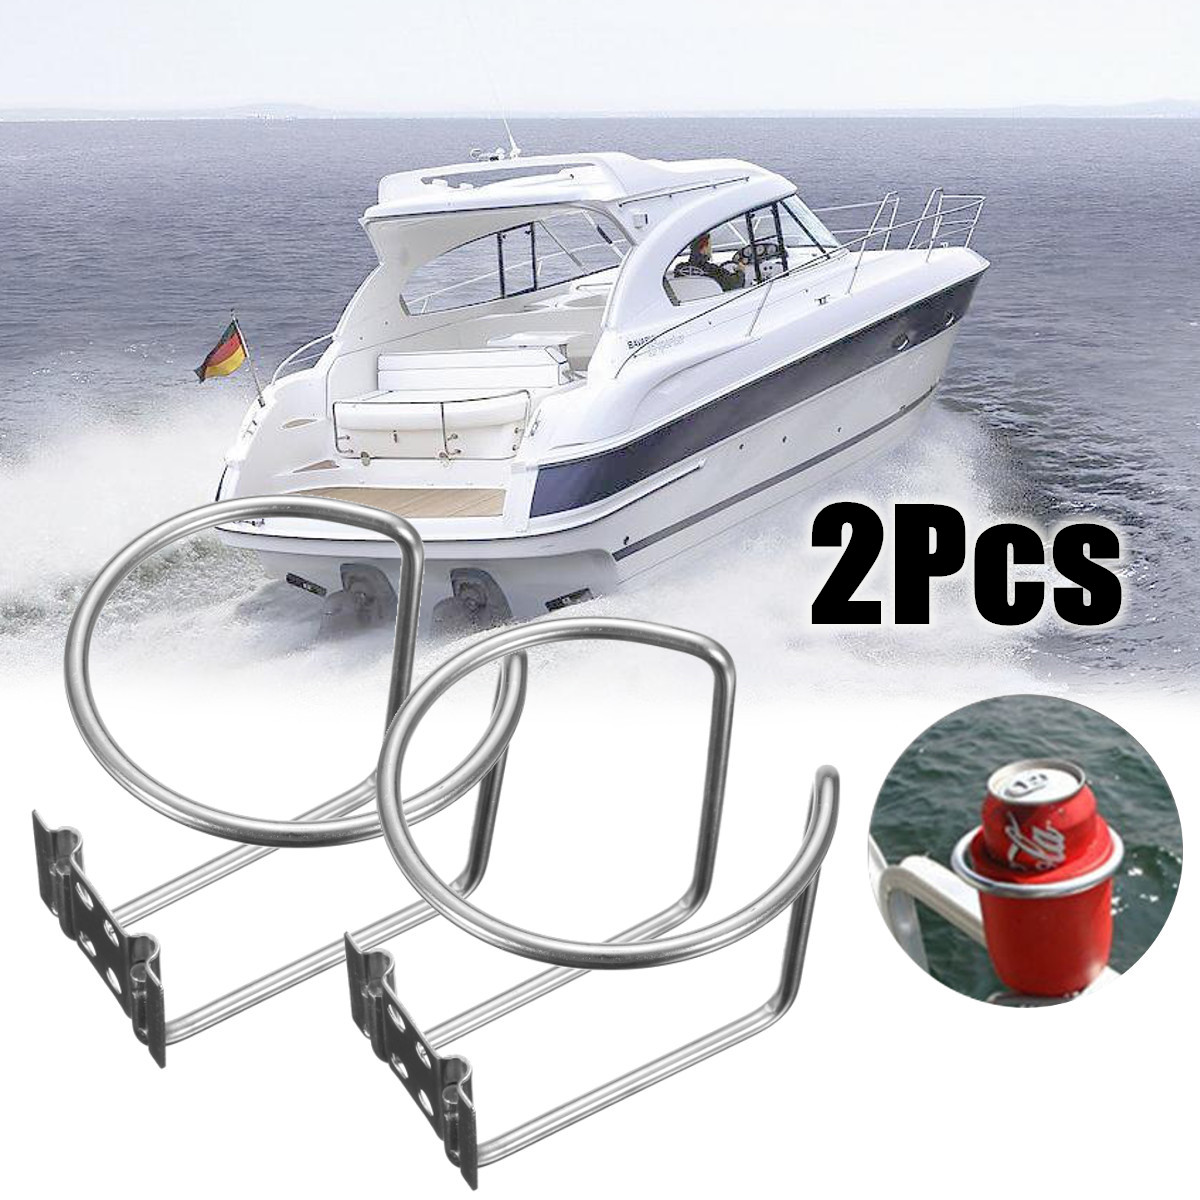 2pcs Universal Boat Ring Cup Holder Water Drink Beverage Bottle Stand Holder For Marine Boat Yacht Truck RV 304 Stainless Steel